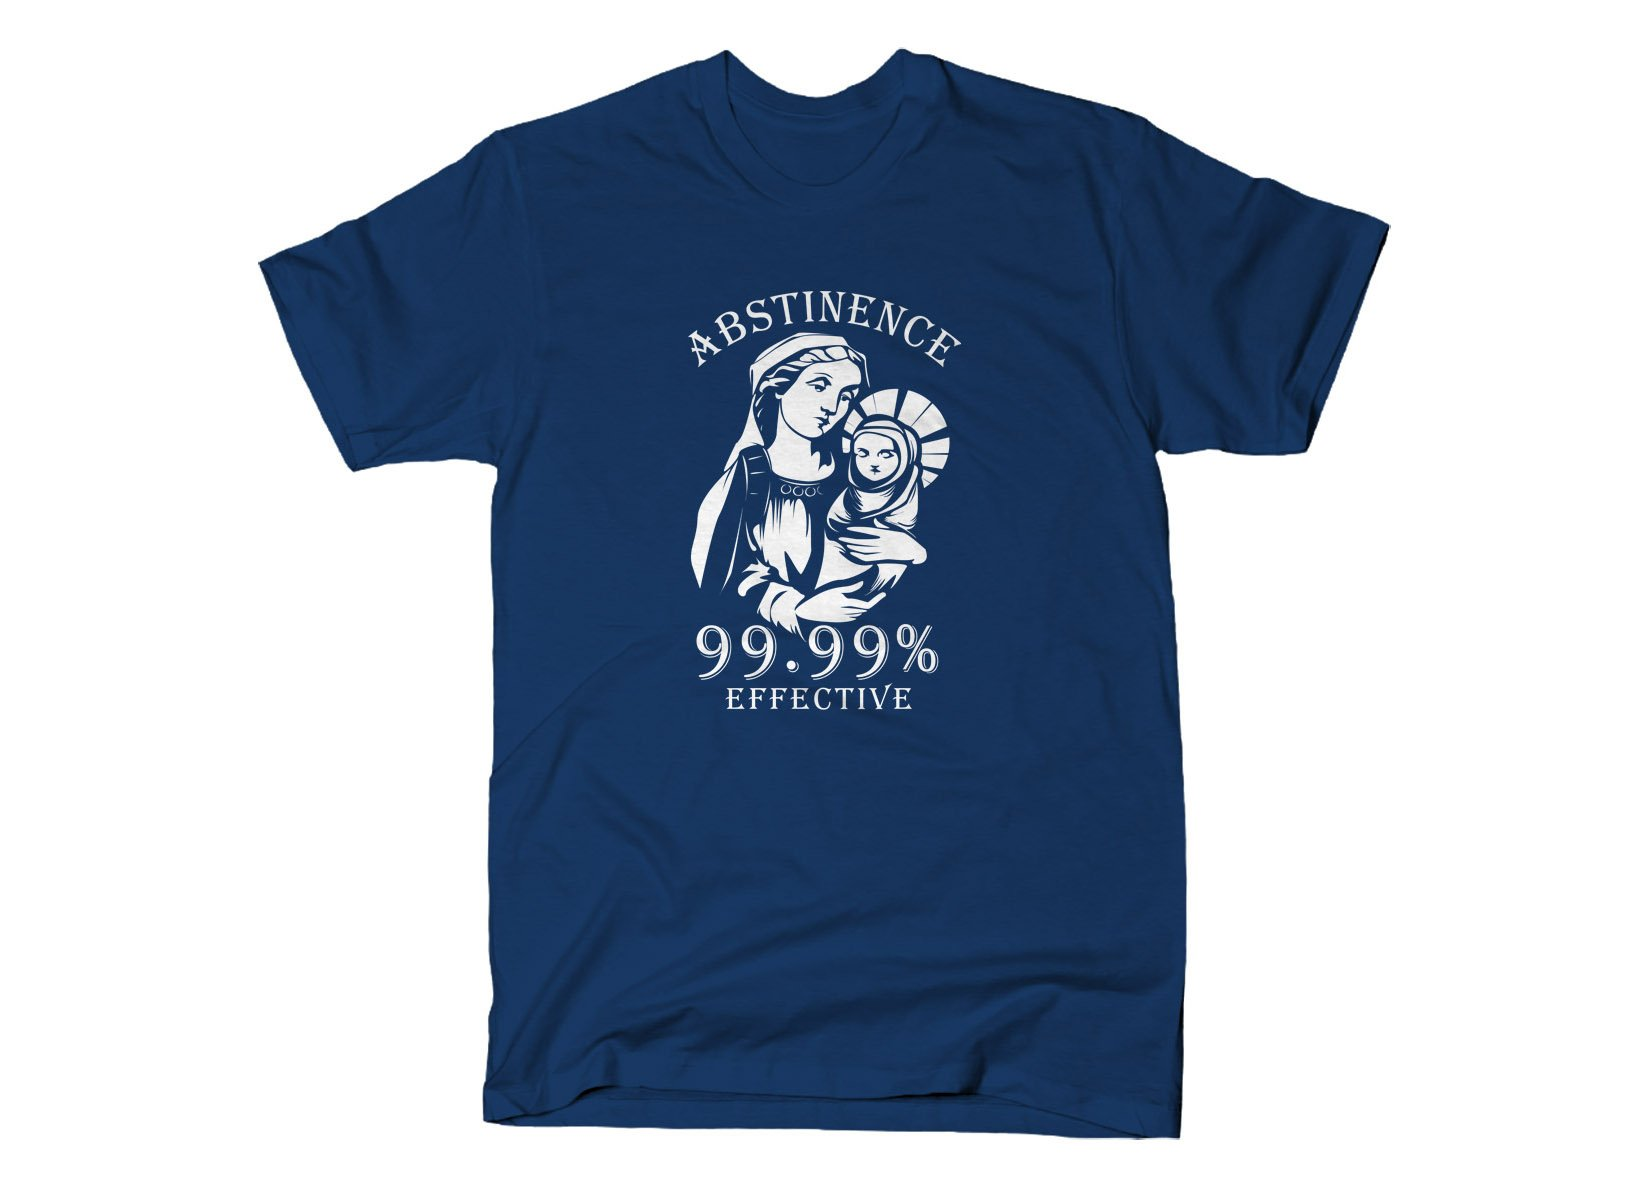 Abstinence, 99.99% Effective on Mens T-Shirt